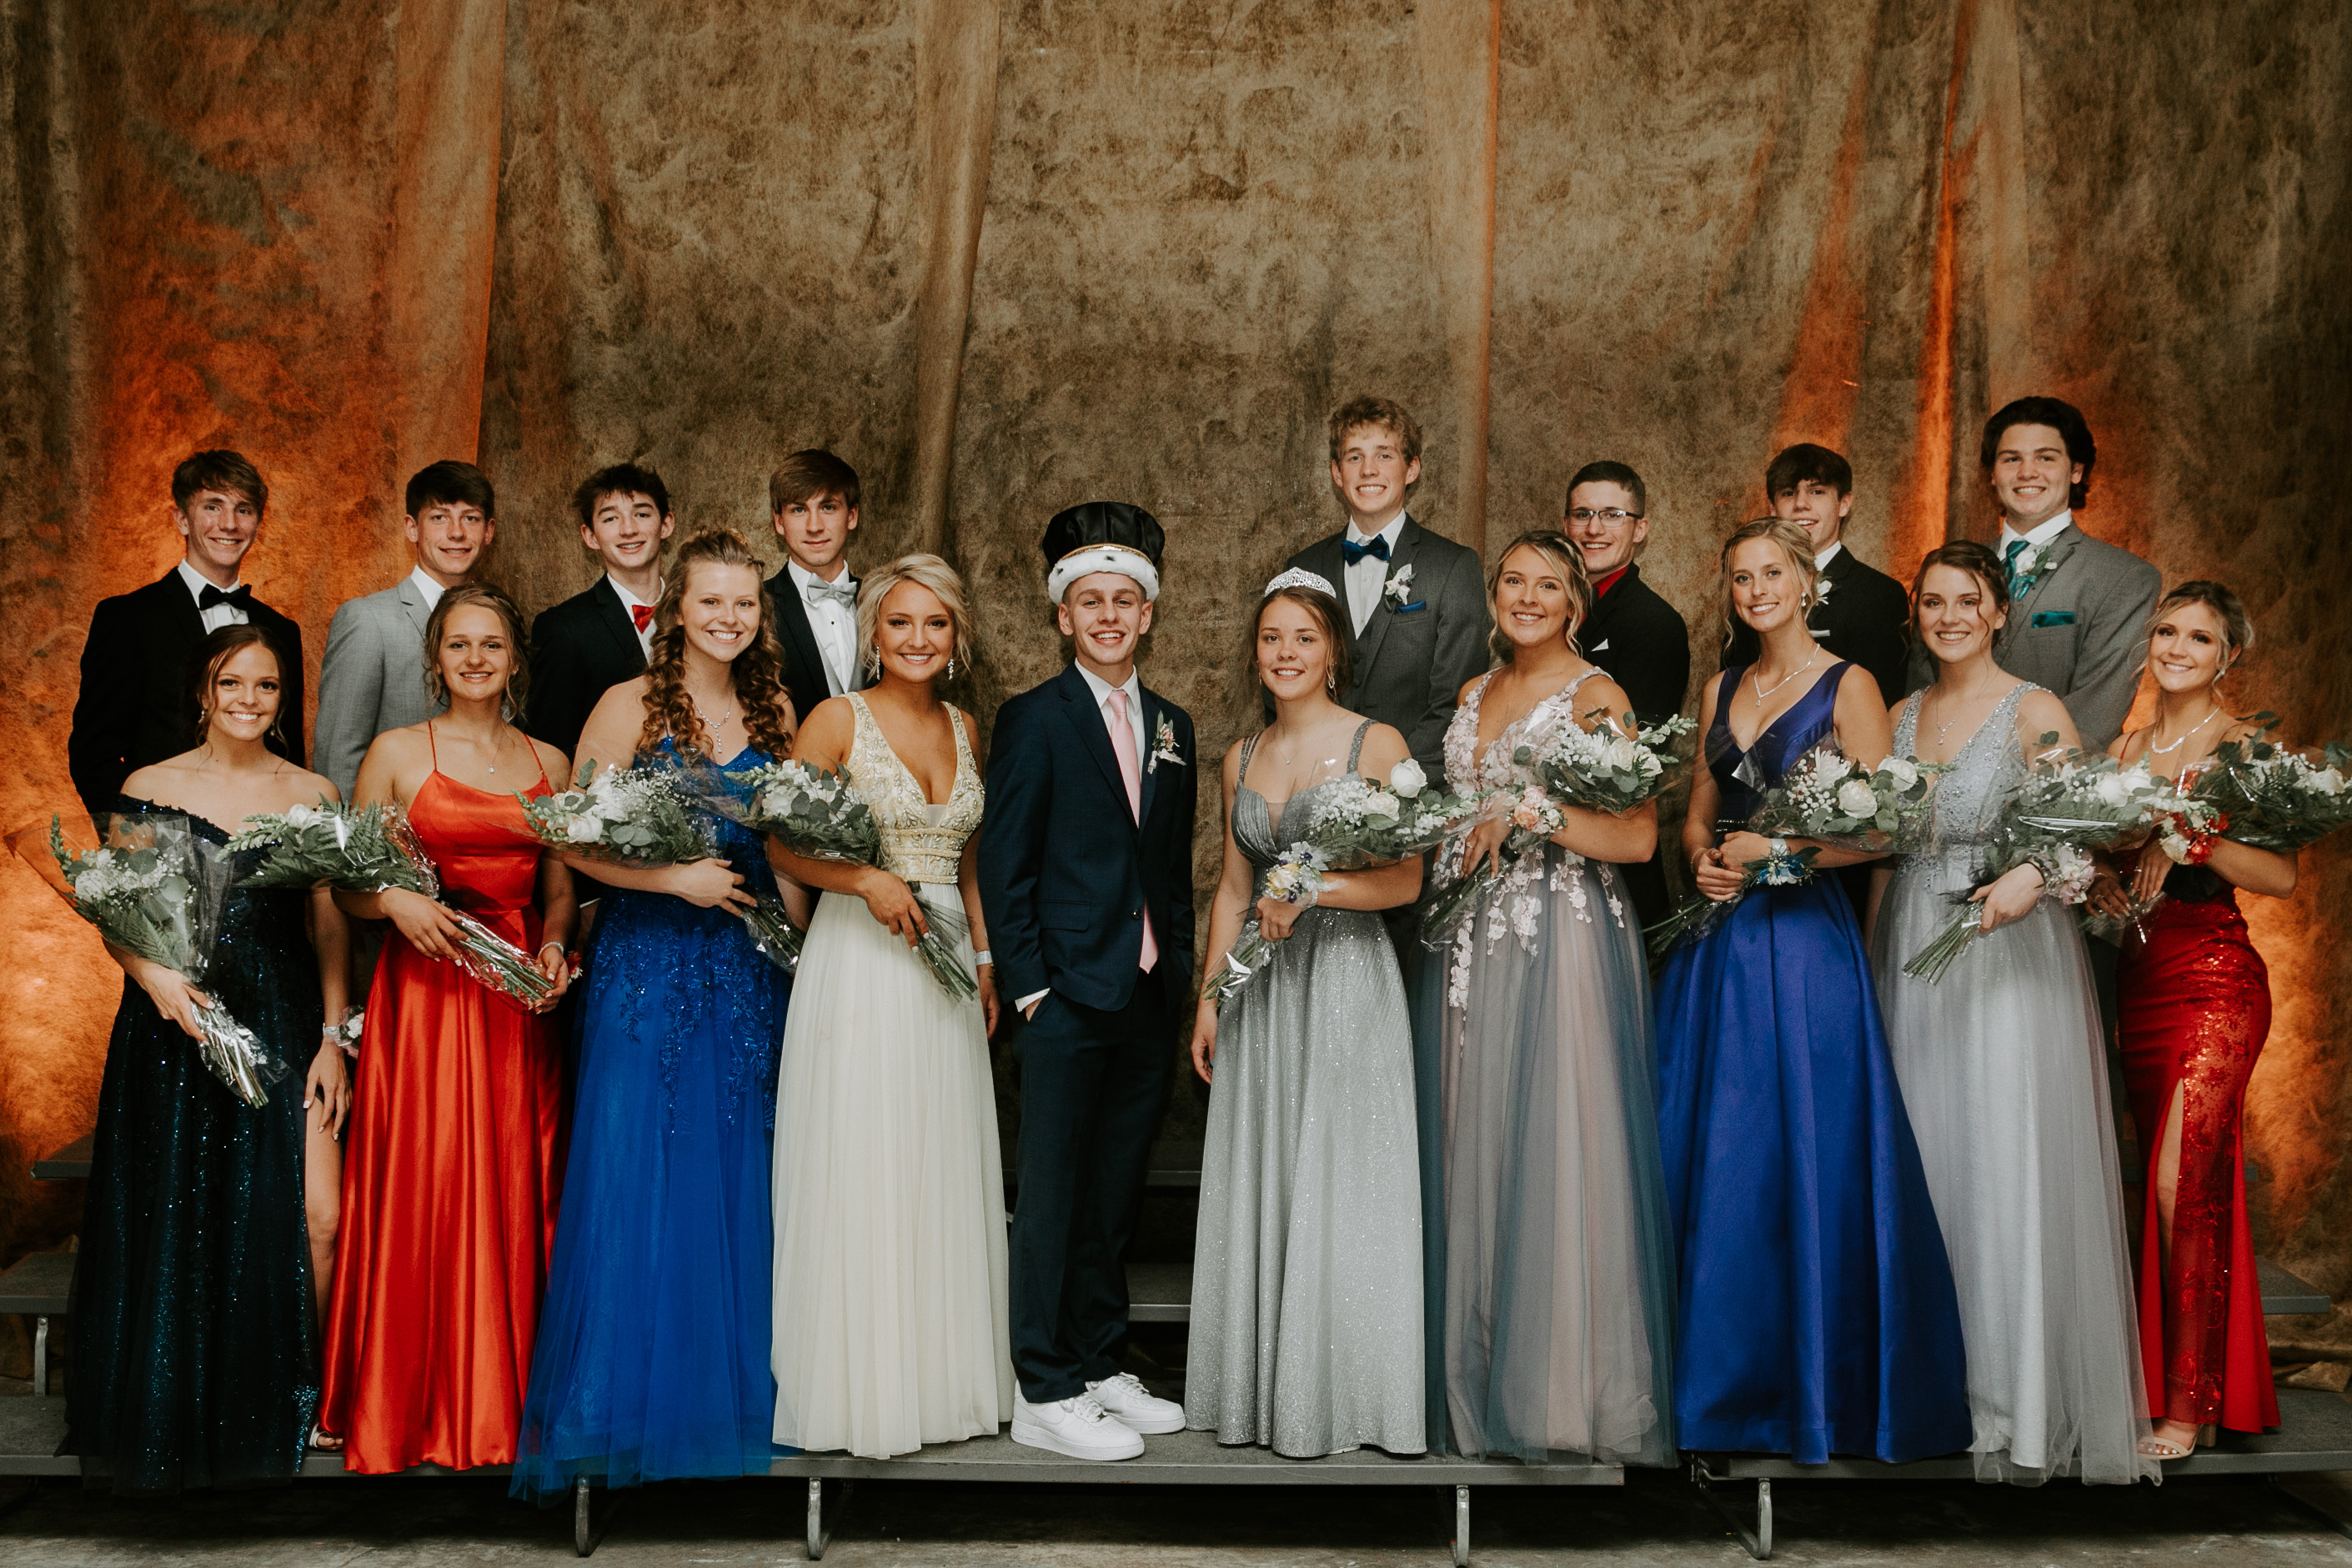 The junior court included, back row from left, Anthony Buss, Caden Schneider, Brady Mikonowicz, Mitchell Henke, Jack Campbell, Wyatt Tourdot, Griffen Elder and Ephraim Albers; front row from left, Summer Thompson, Ava Stieve, Macie Wieman, Alayna Haugh, Anna Pillow, Halle Hahn, Mahra Wieman and Matti Severson. The king was Joseph Lindholm and the queen was McKenzie Bestor. (Submitted photos)